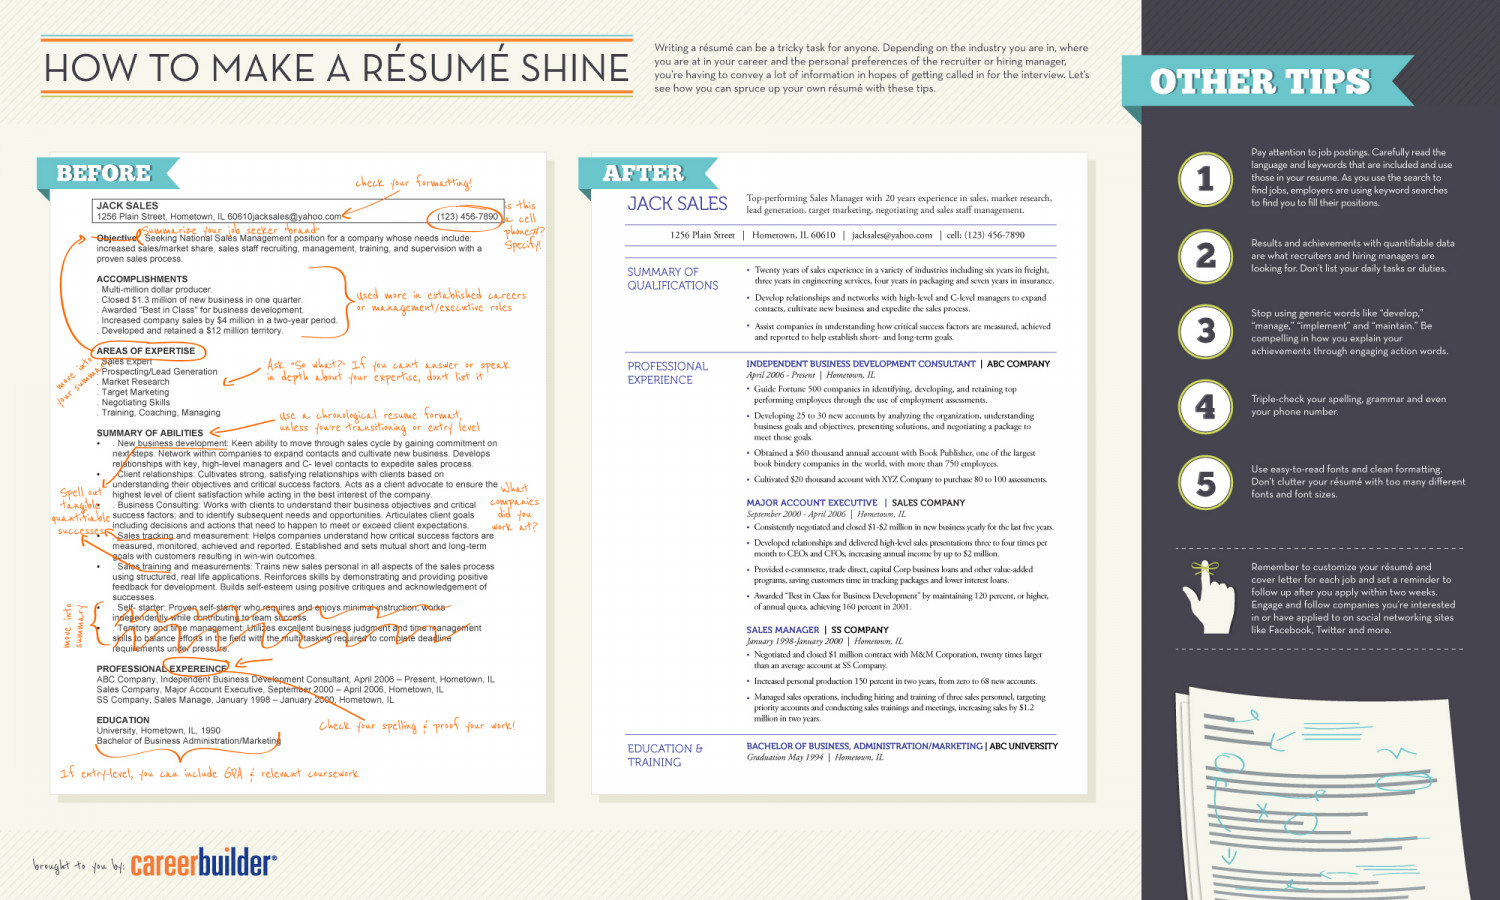 How To Make A Résumé Shine Infographic  Career Builder Resumes